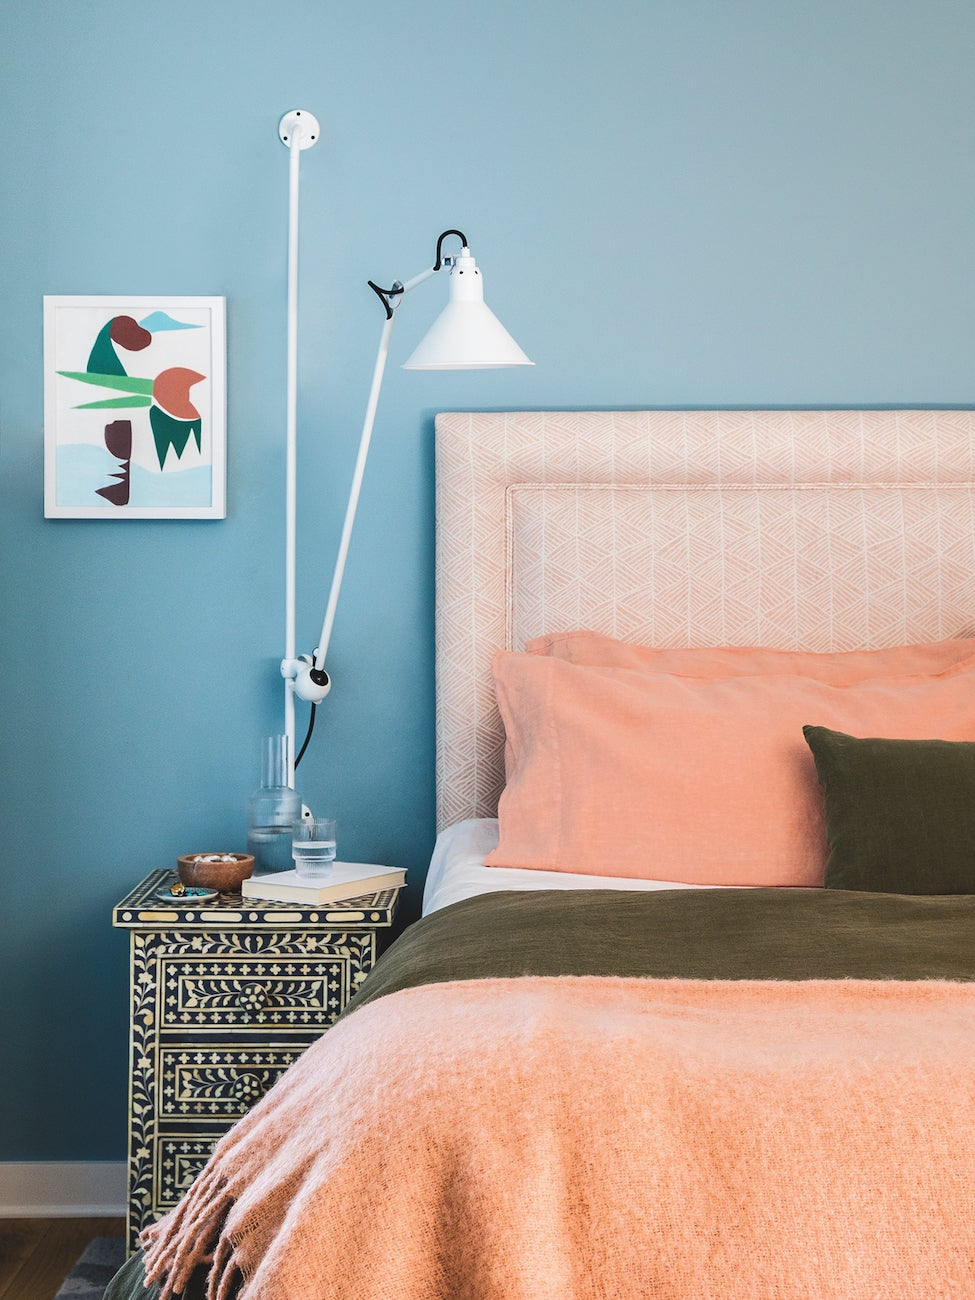 Bedroom with blue walls and peach sheets